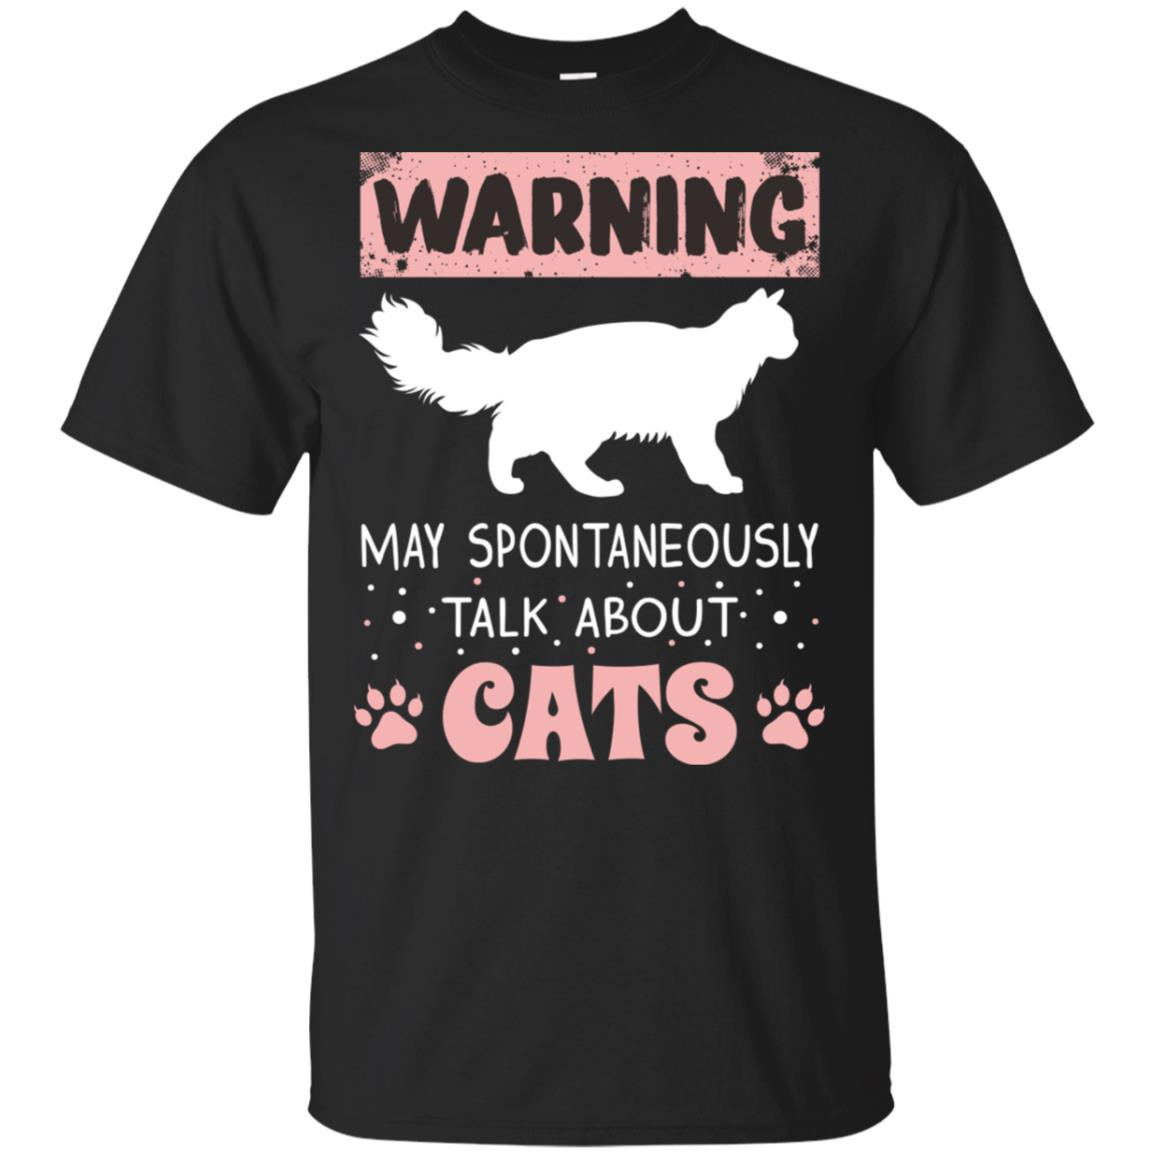 Warning May Spontaneously Talk About Cats Unisex Short Sleeve